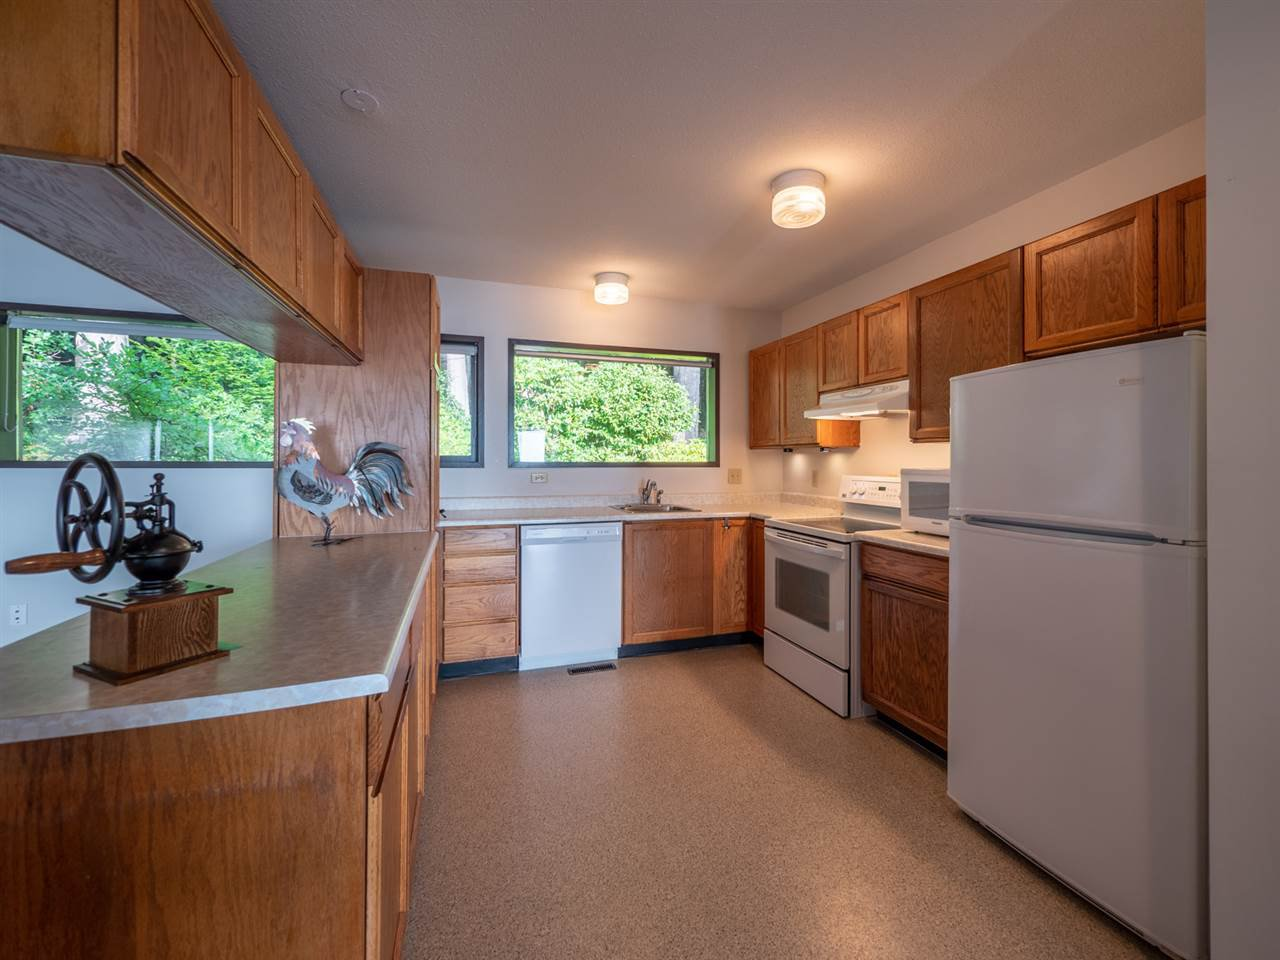 Photo 15: Photos: 877 GOWER POINT Road in Gibsons: Gibsons & Area House for sale (Sunshine Coast)  : MLS®# R2419918